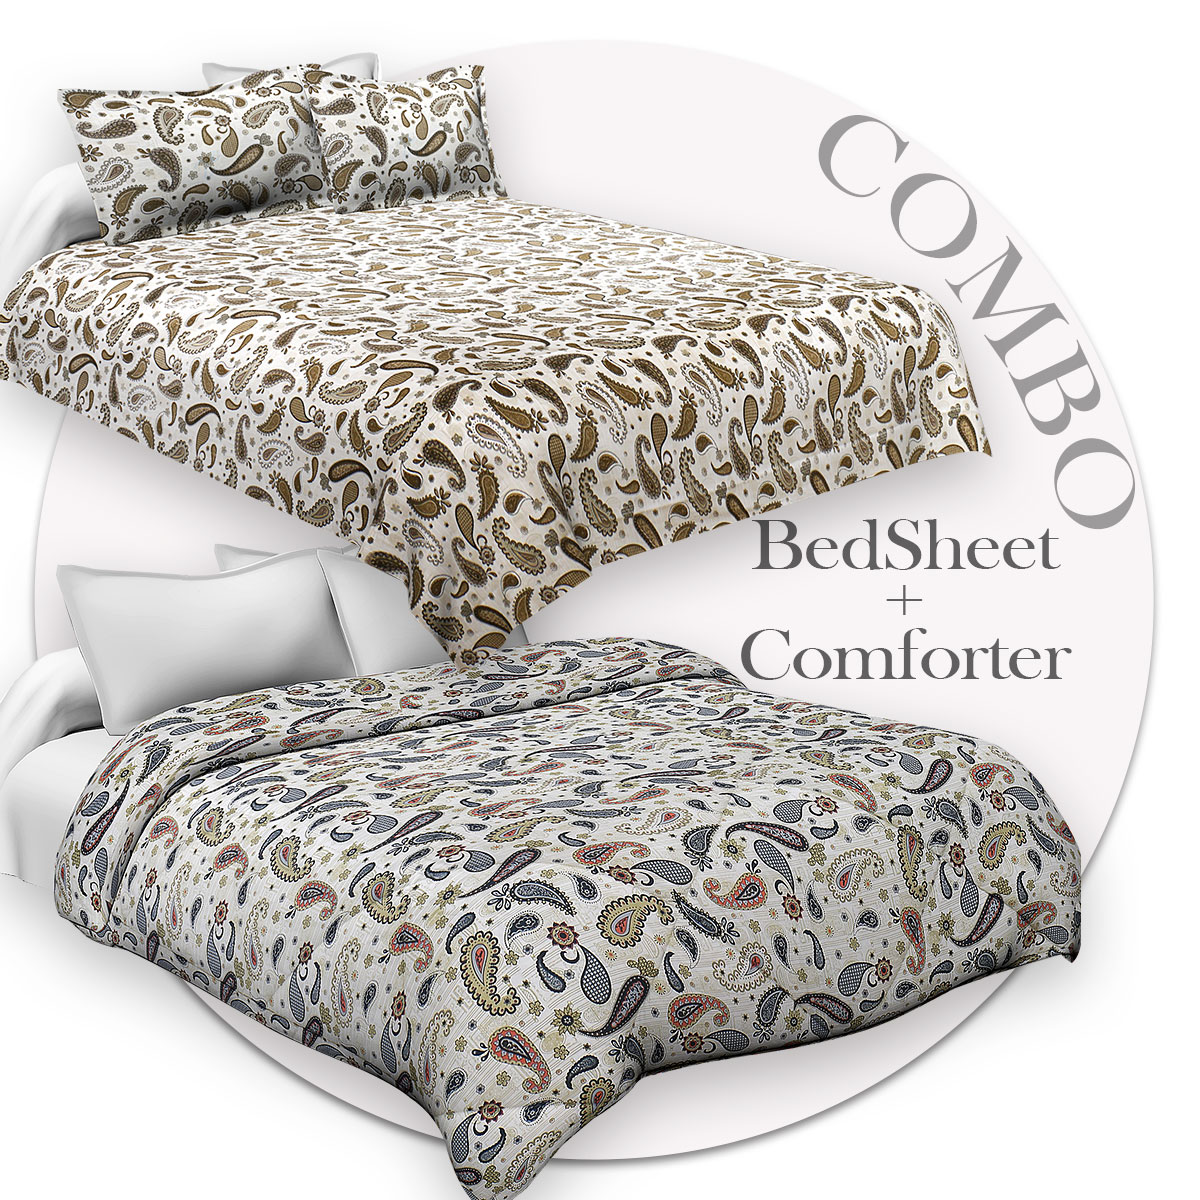 Bed in a Bag Paisley Creamish Green Double BedSheet  Comforter Combo